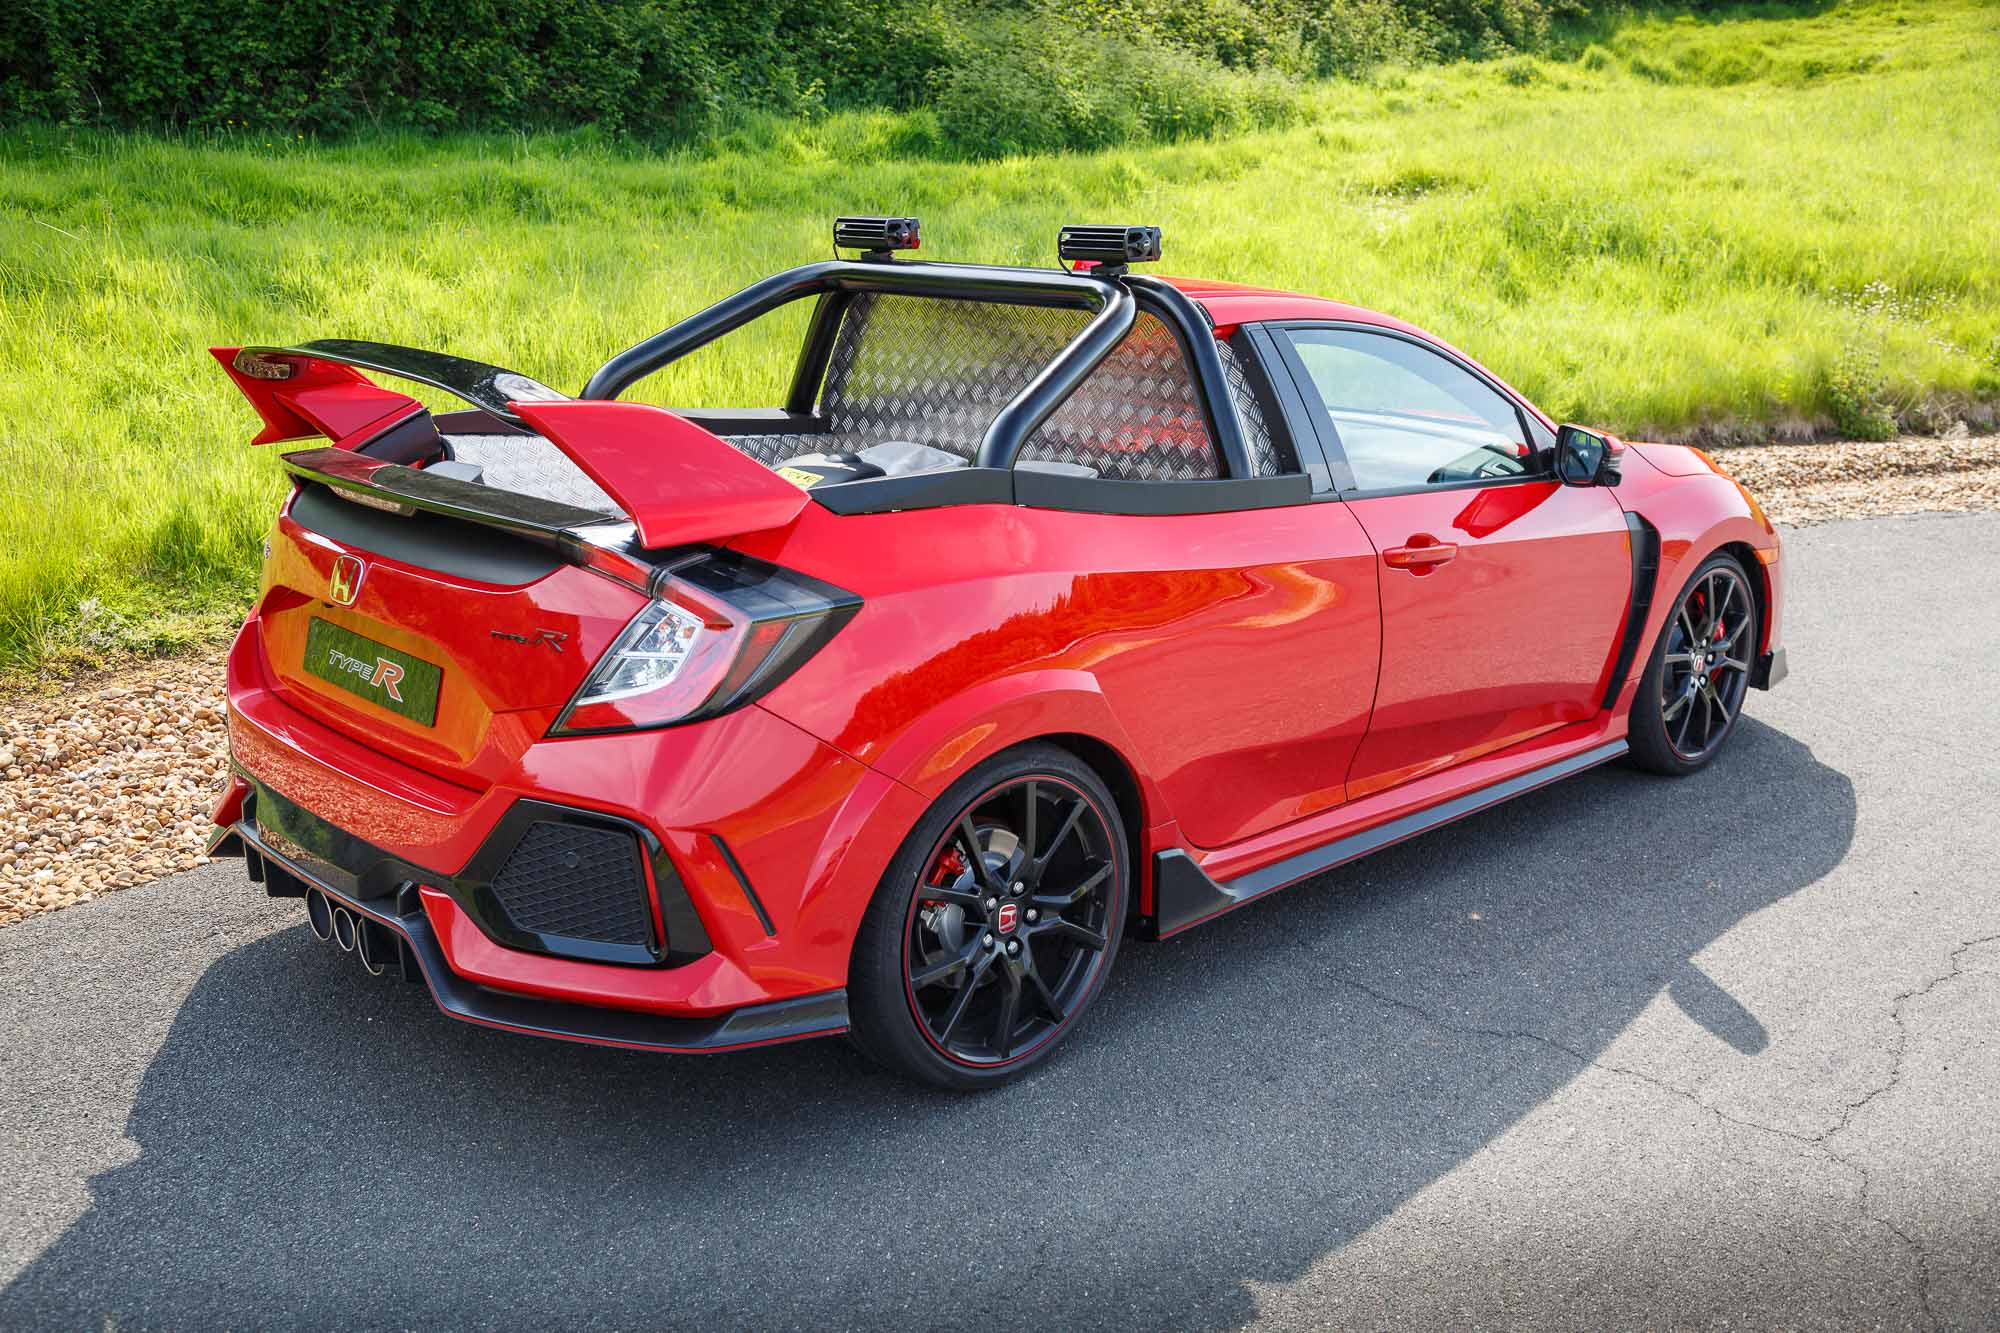 Honda Civic Type R Pickup Truck 165mph And 0 62mph In